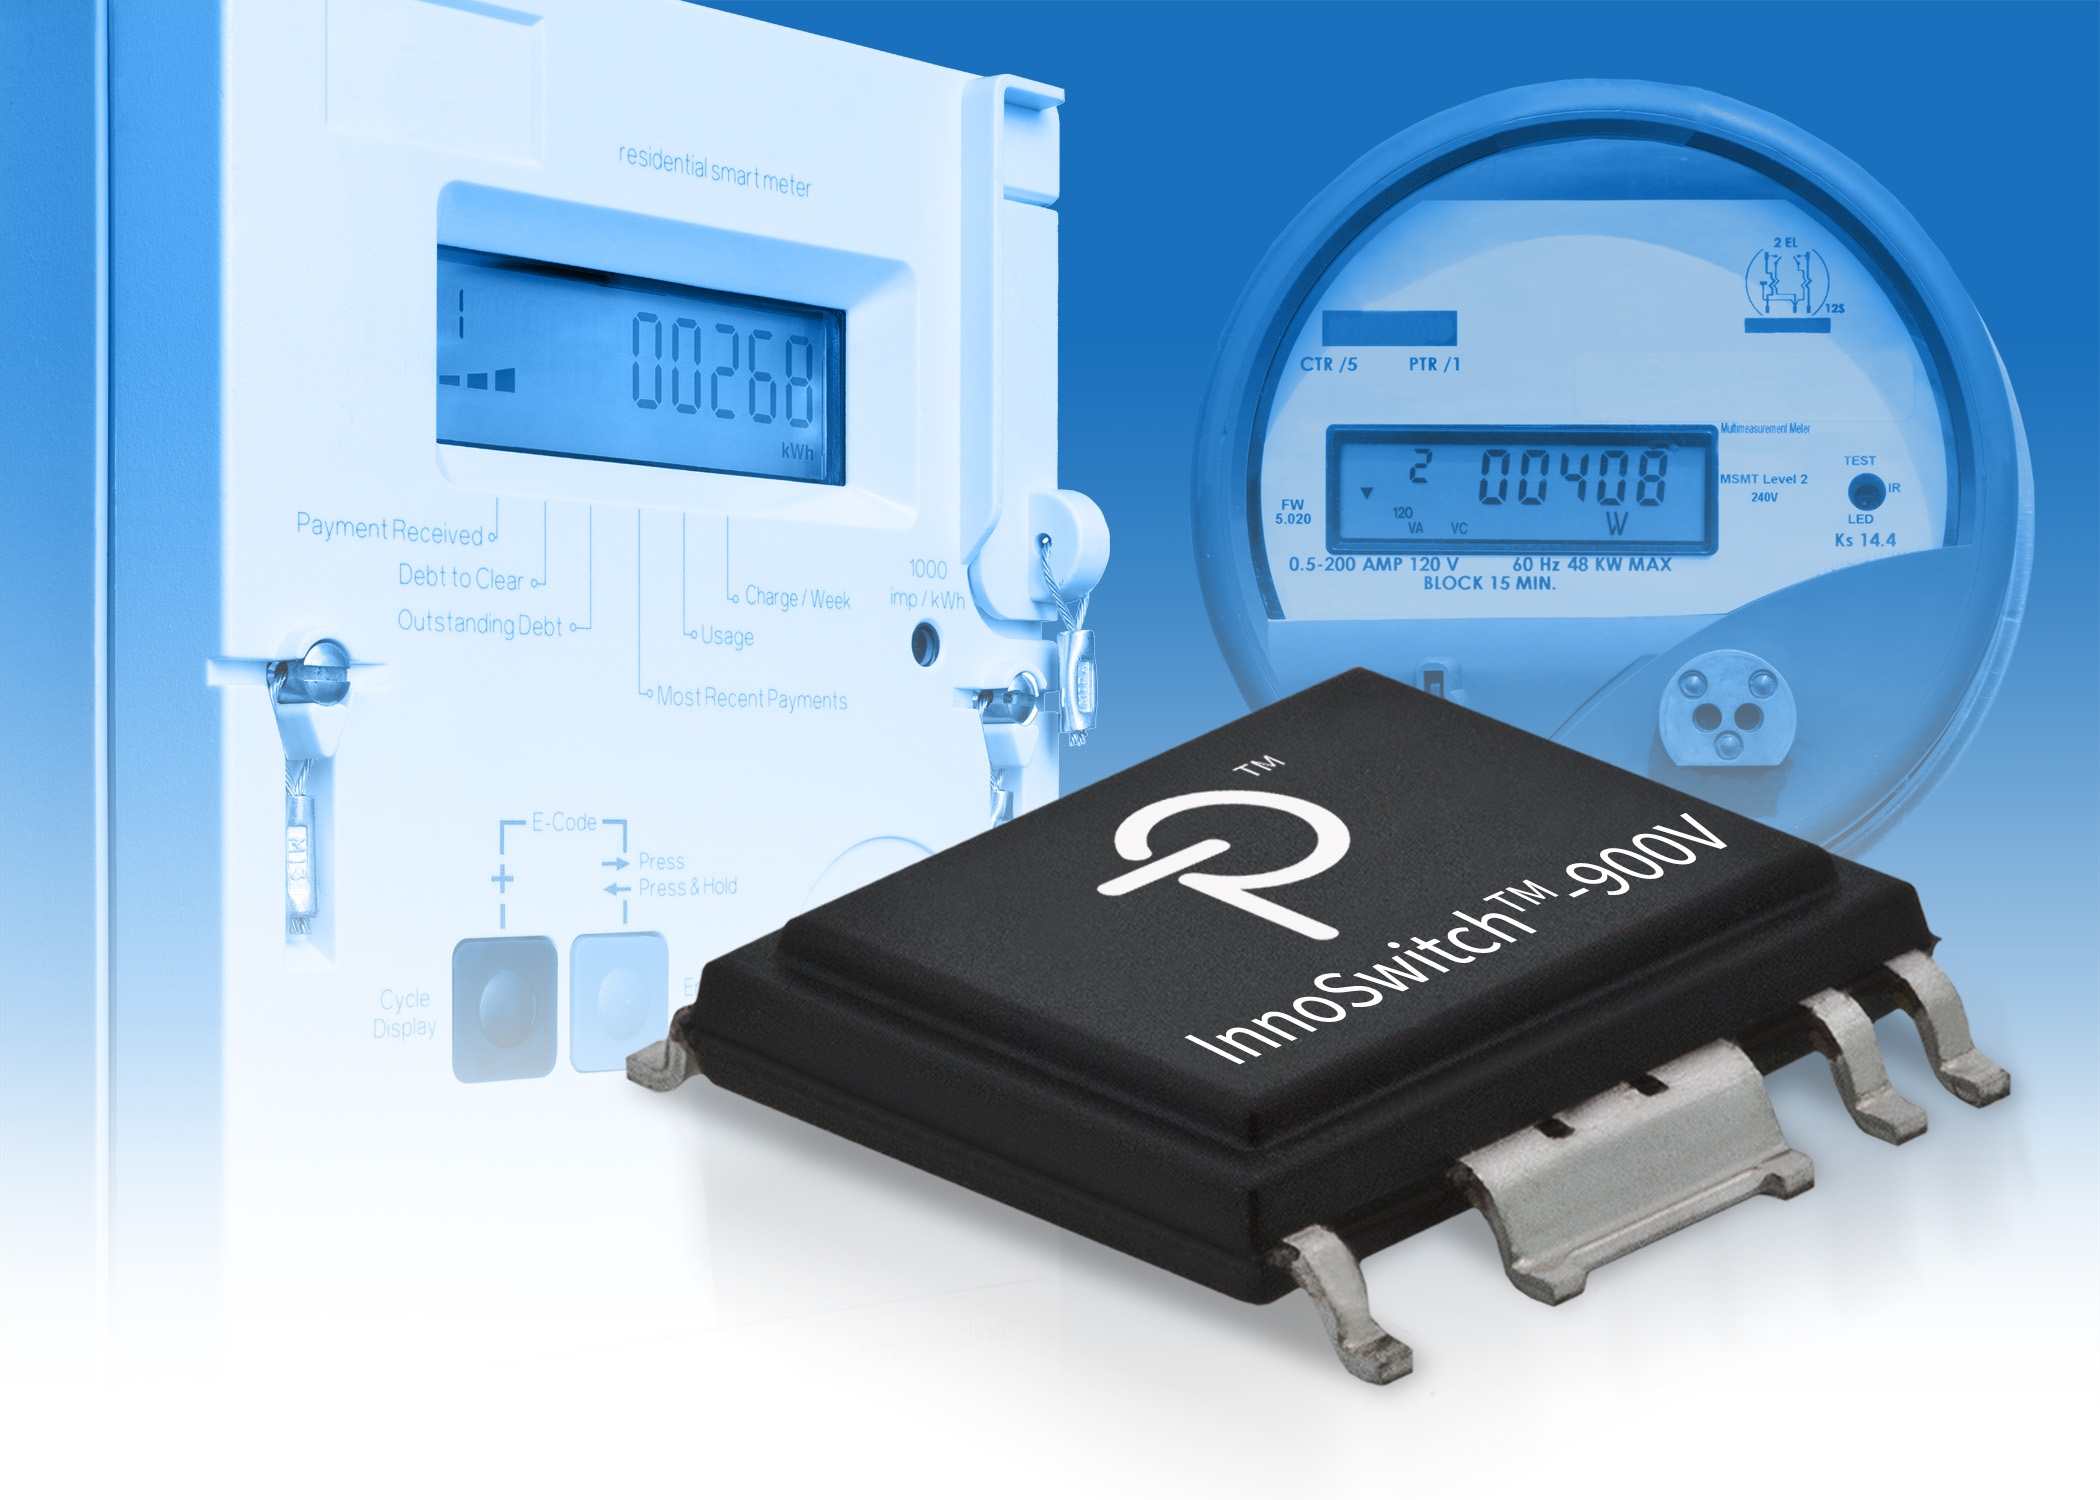 Power Integrations' 900 V InnoSwitch-EP ICs serves industrial and three-phase power supply apps